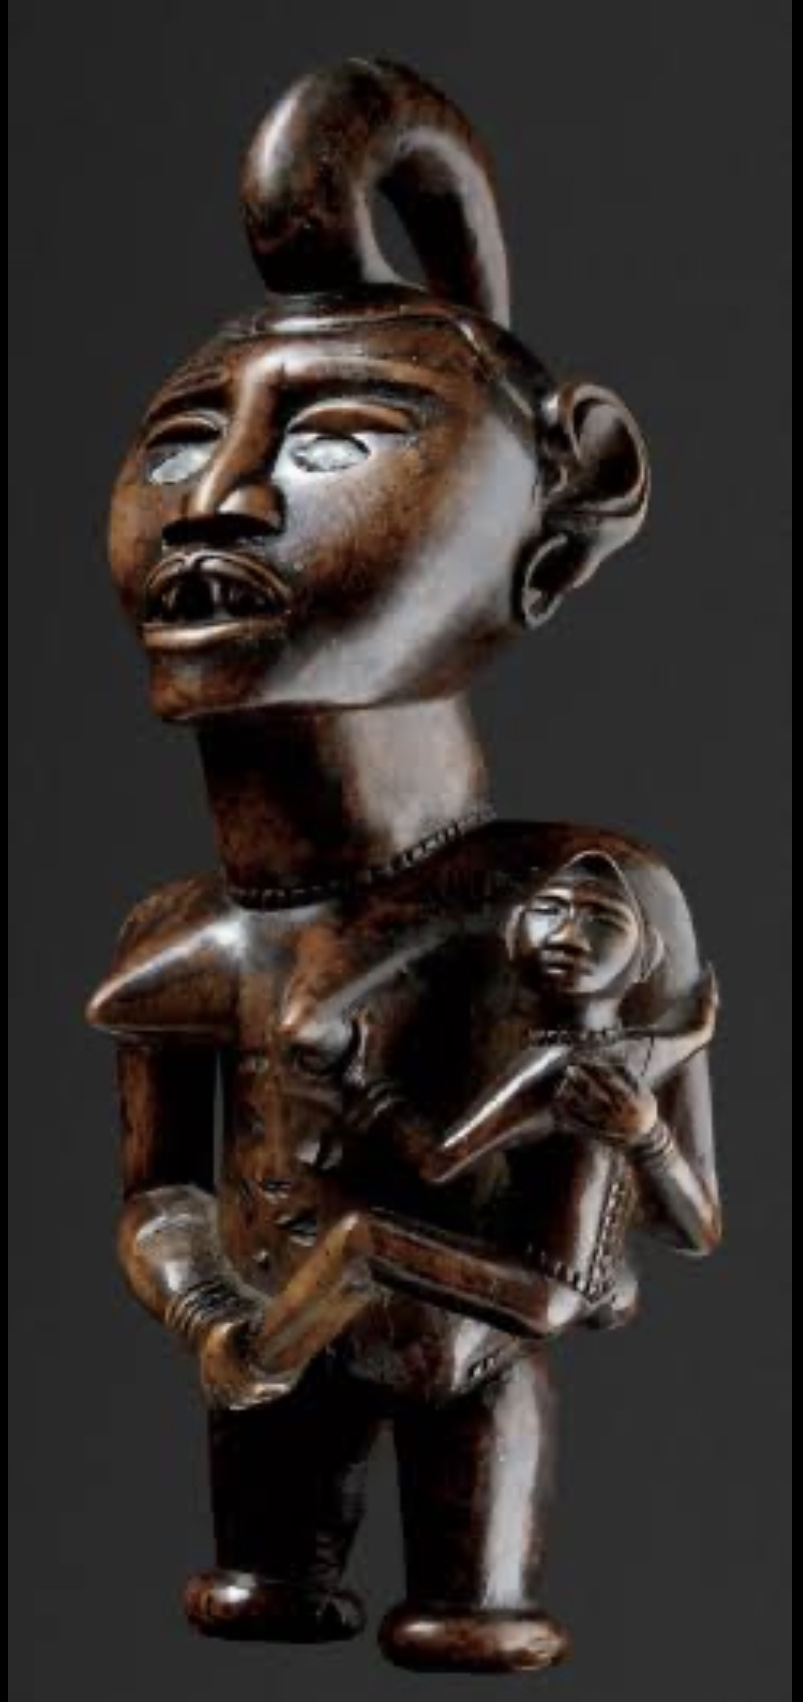 Estatueta Mpemba Mayombe - República Democrática do Congo